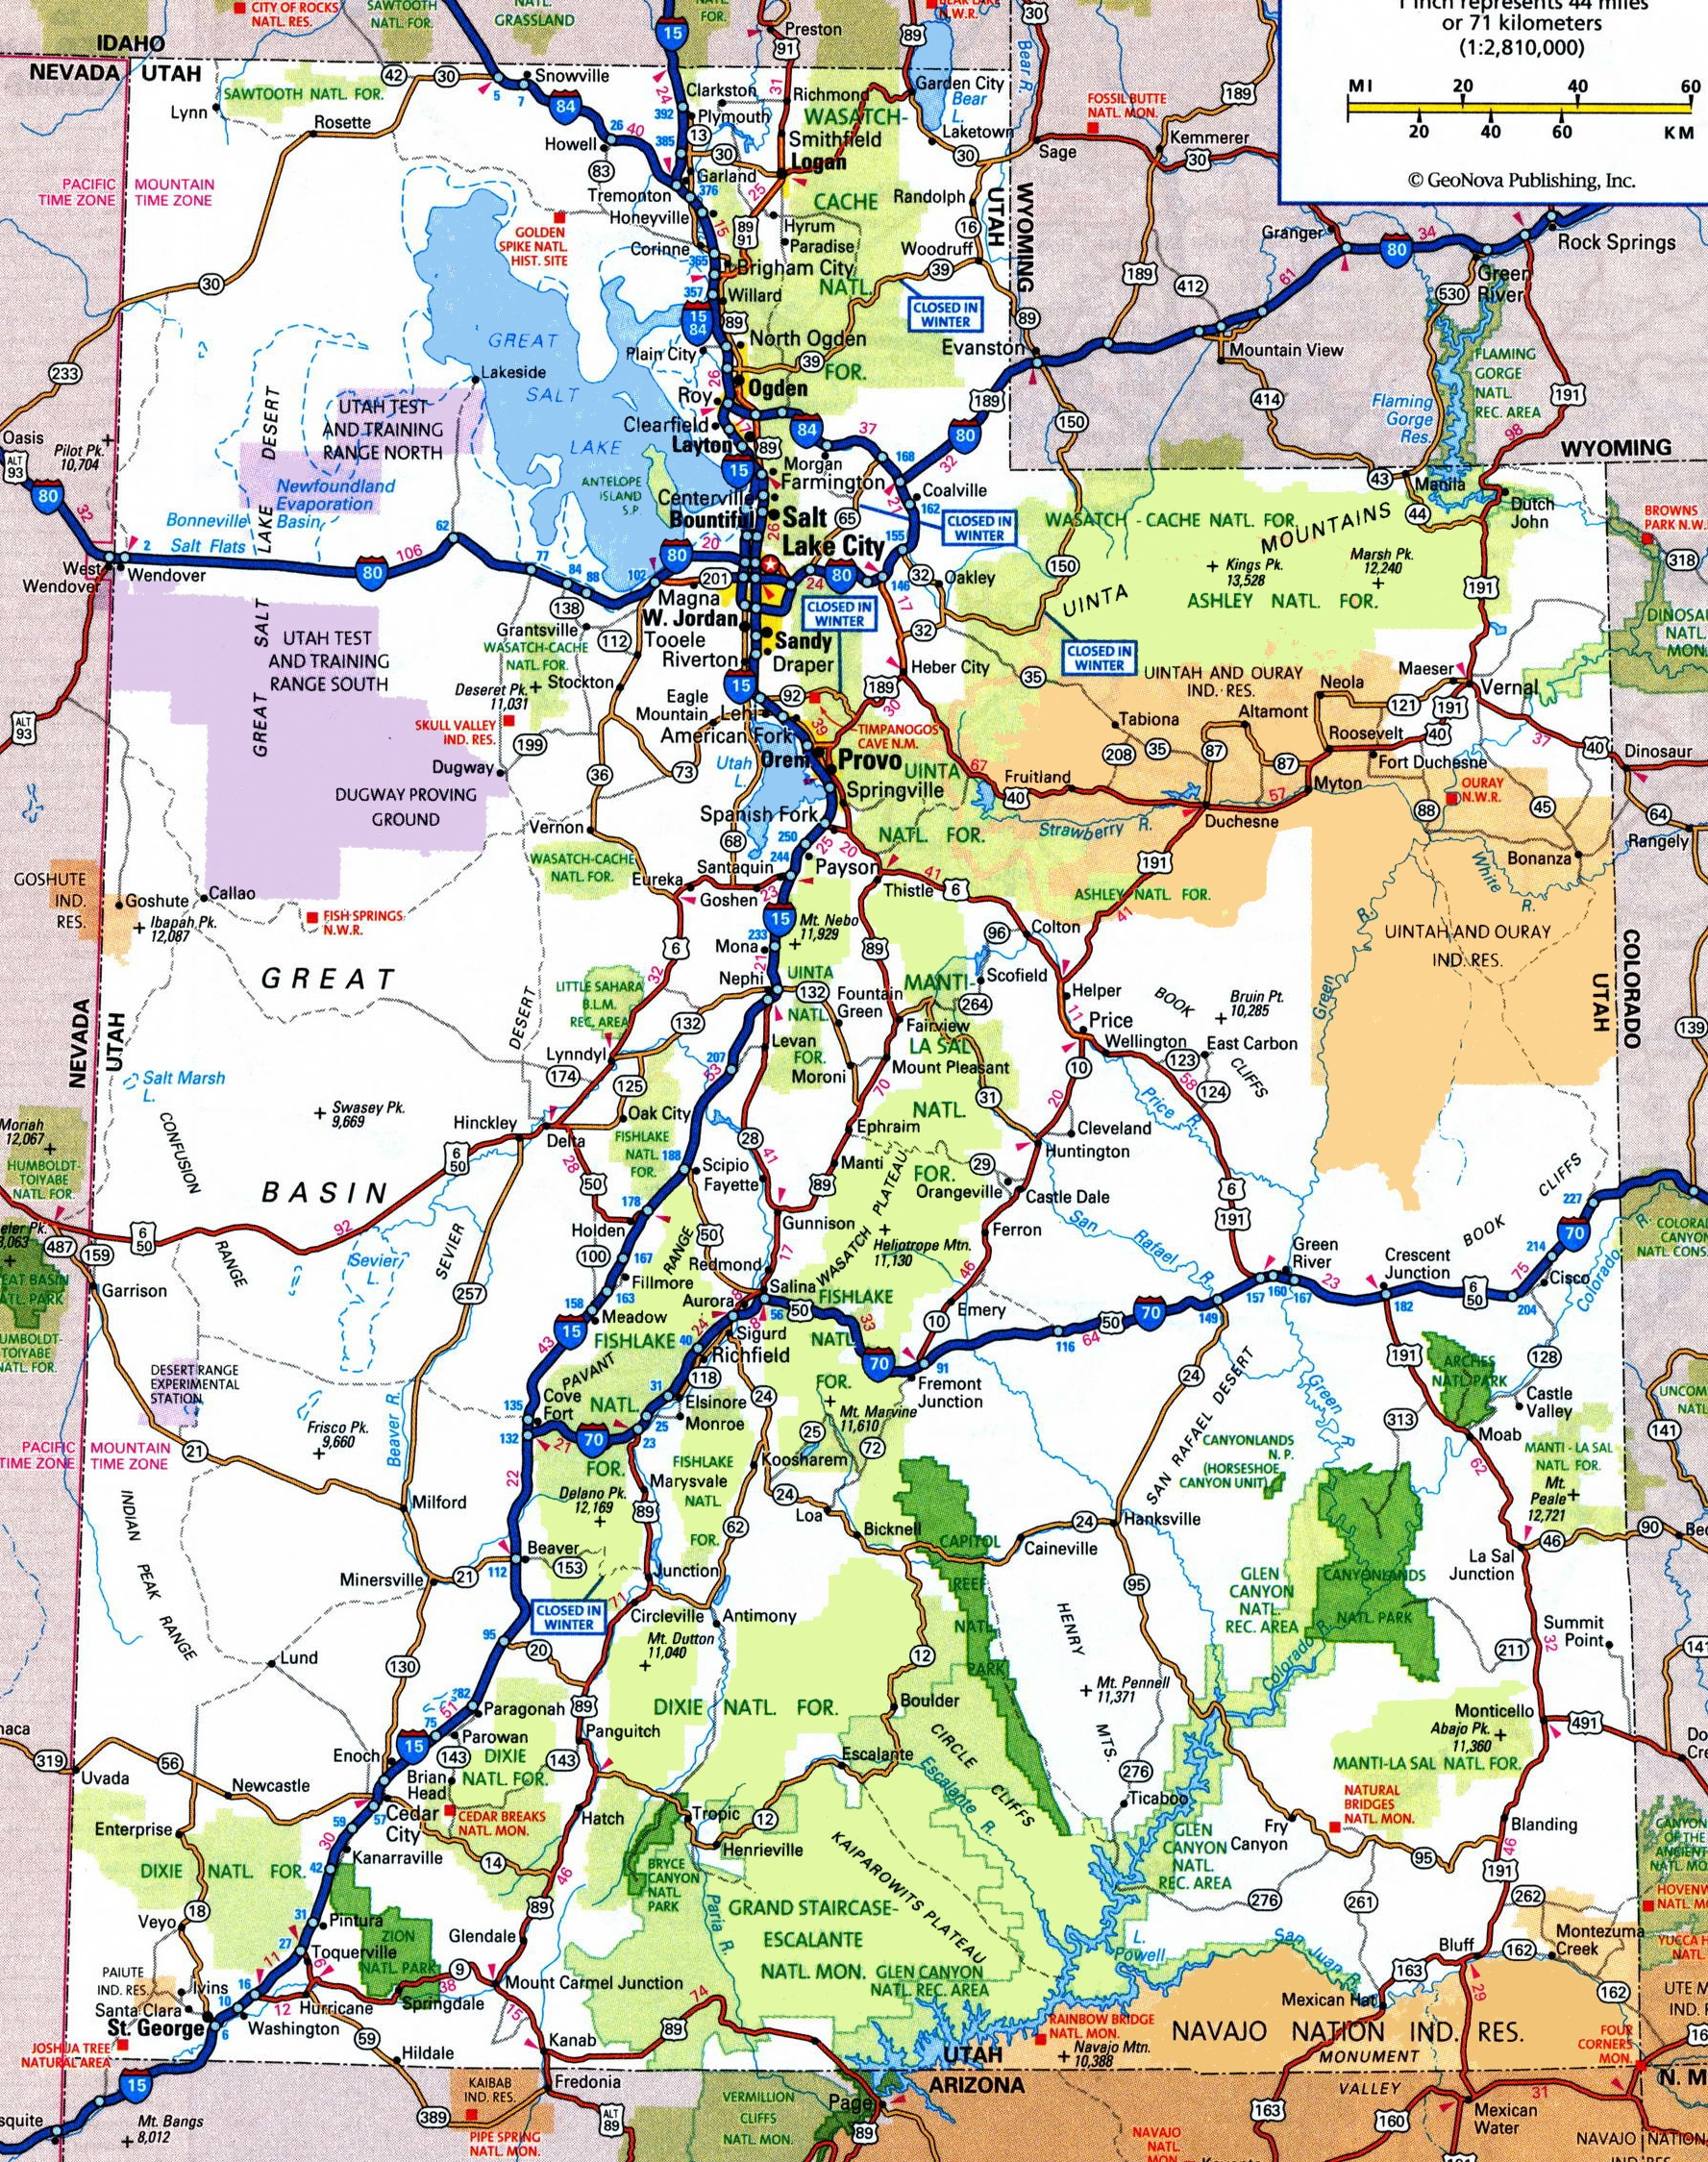 Utah Road Map - Utah Road Map Printable